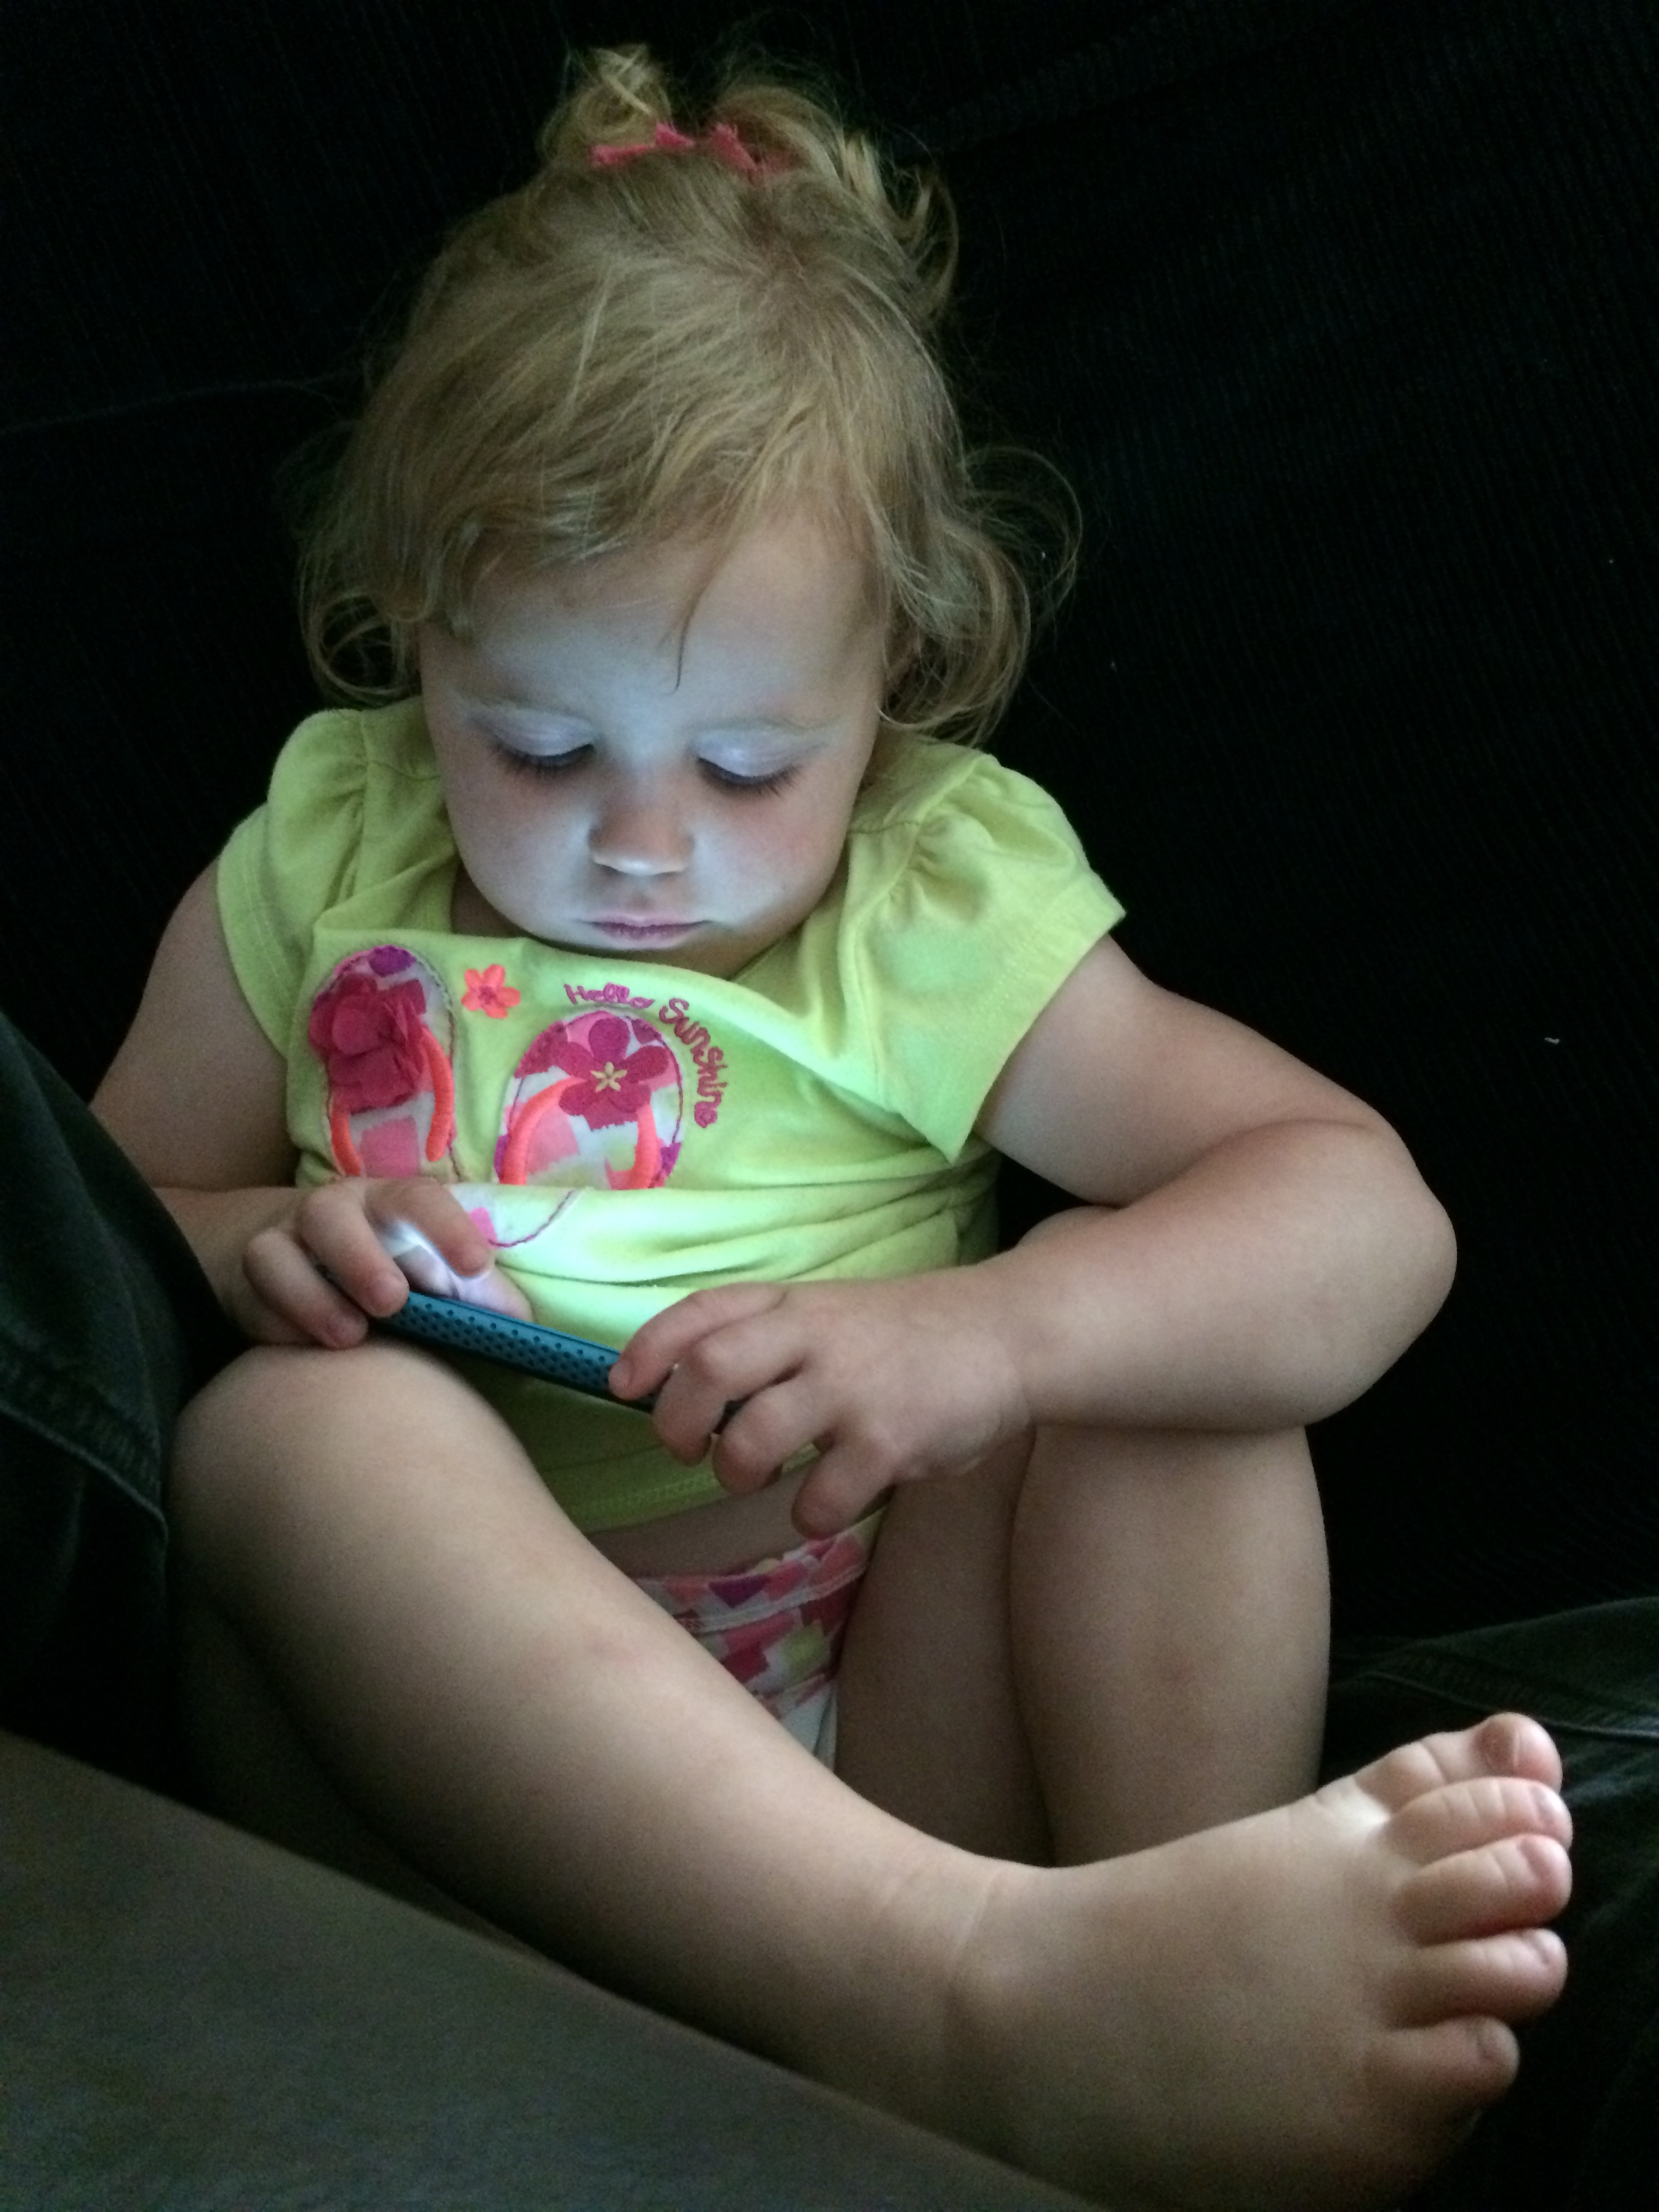 Granddaughter on her iPod Touch (older pic)